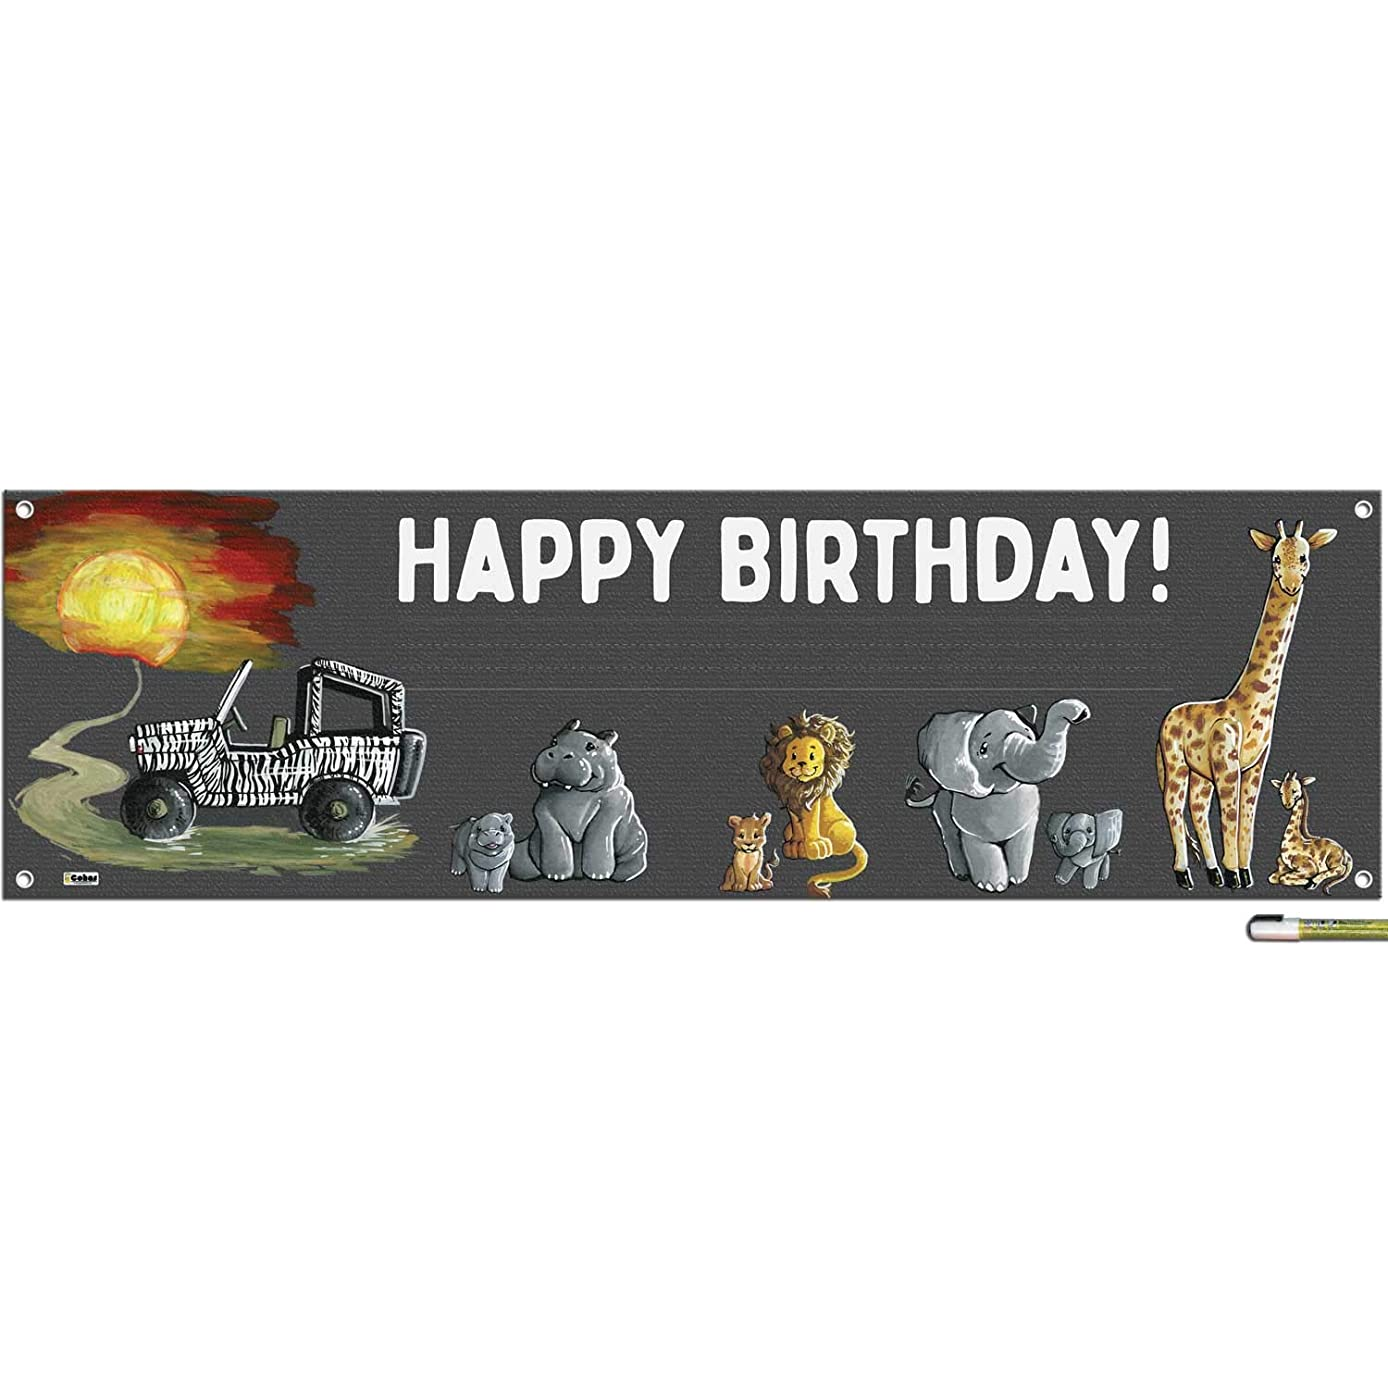 Cohas Safari Theme Happy Birthday Banner Includes 16 by 52 Inch Vinyl Banner with Metal Hanging Rings, Additional Text Guidelines, and White Marker